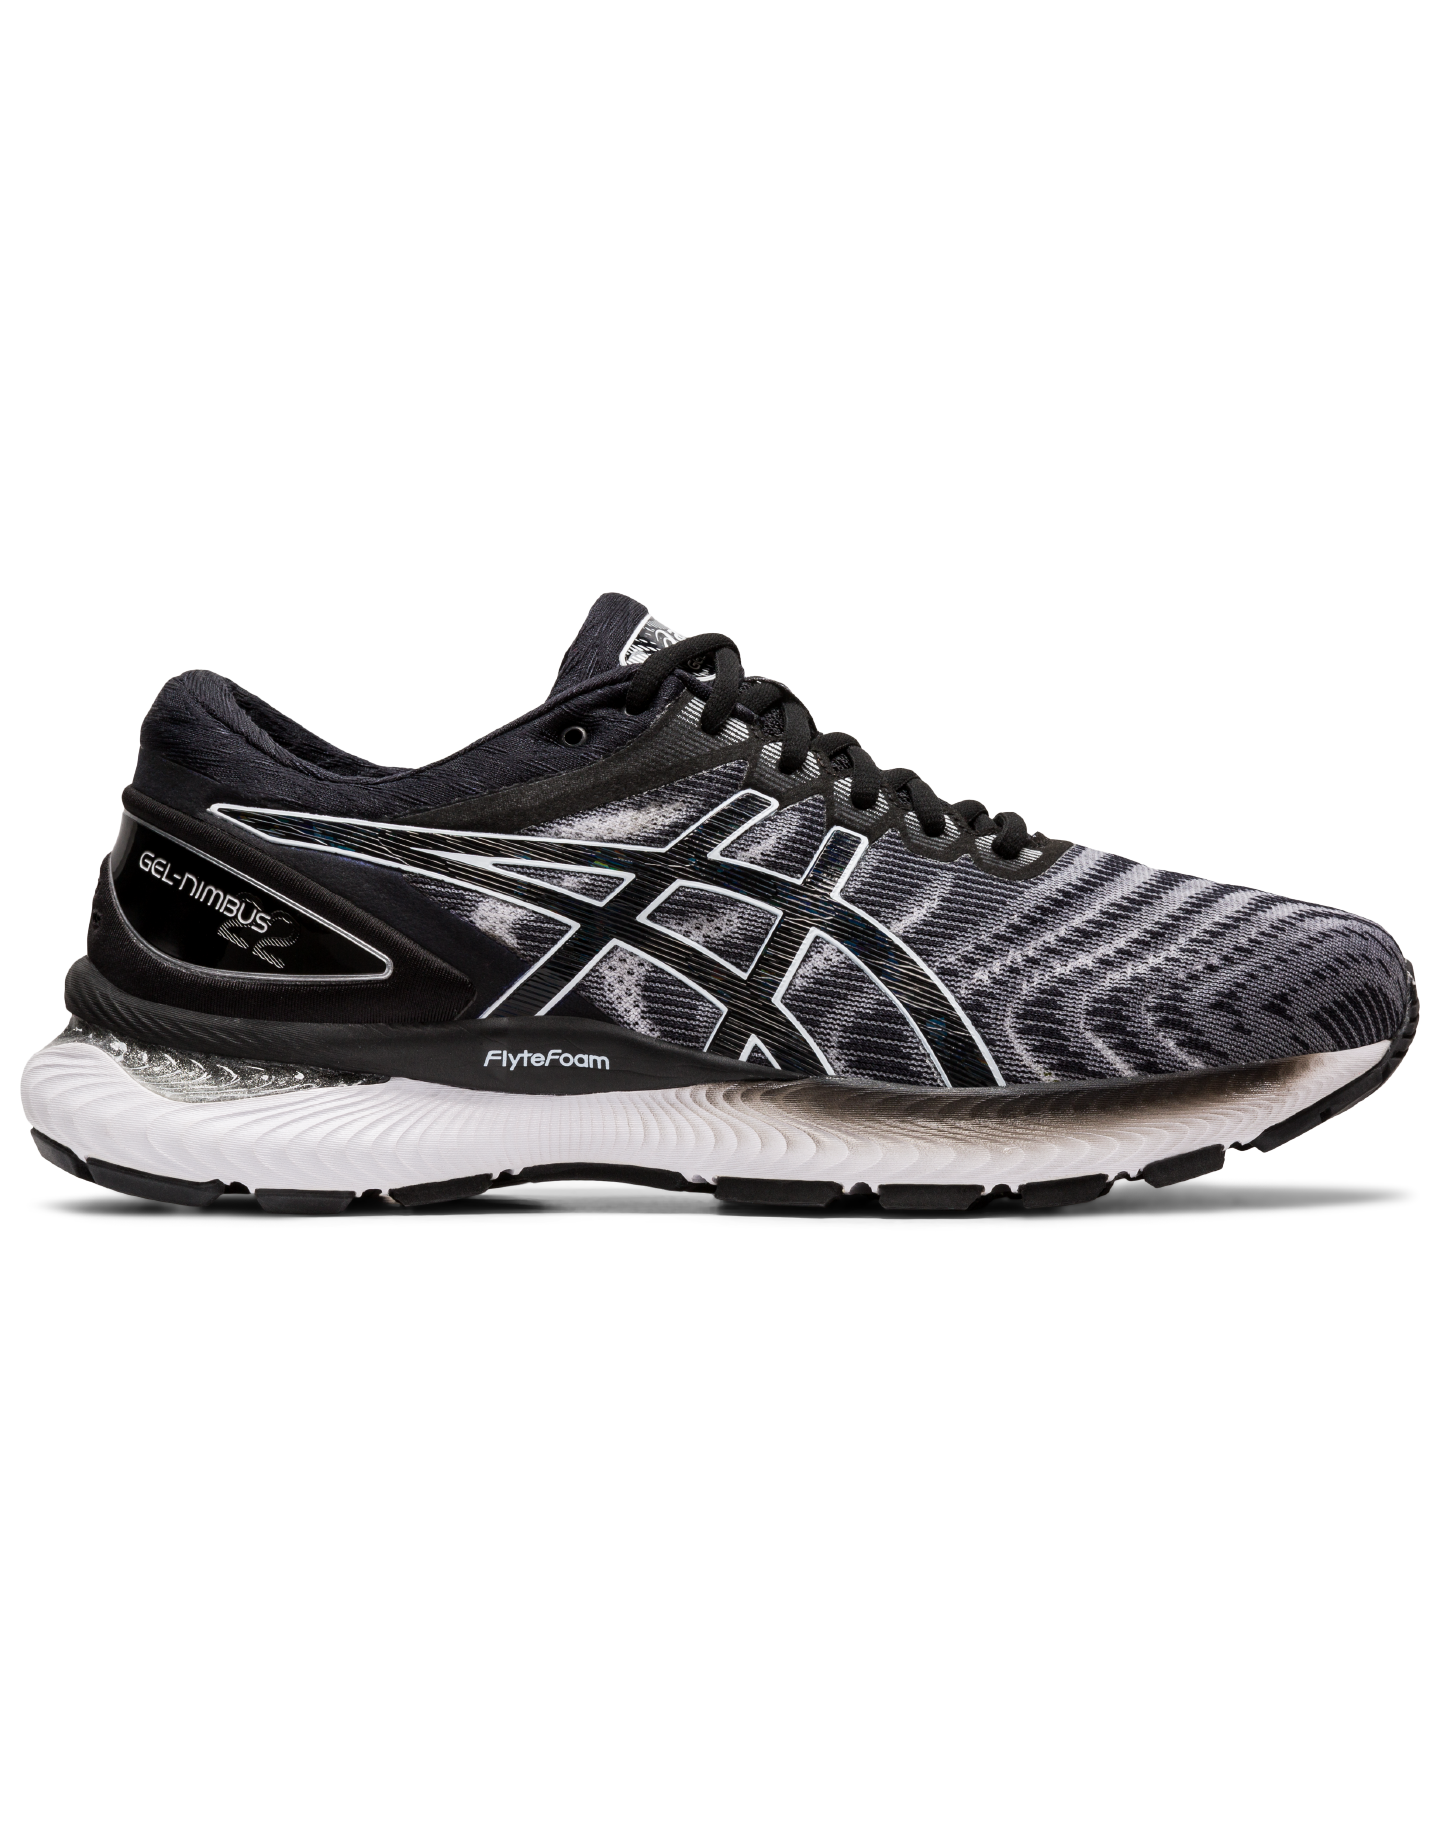 Asics Asics GEL-Nimbus 22 - Men